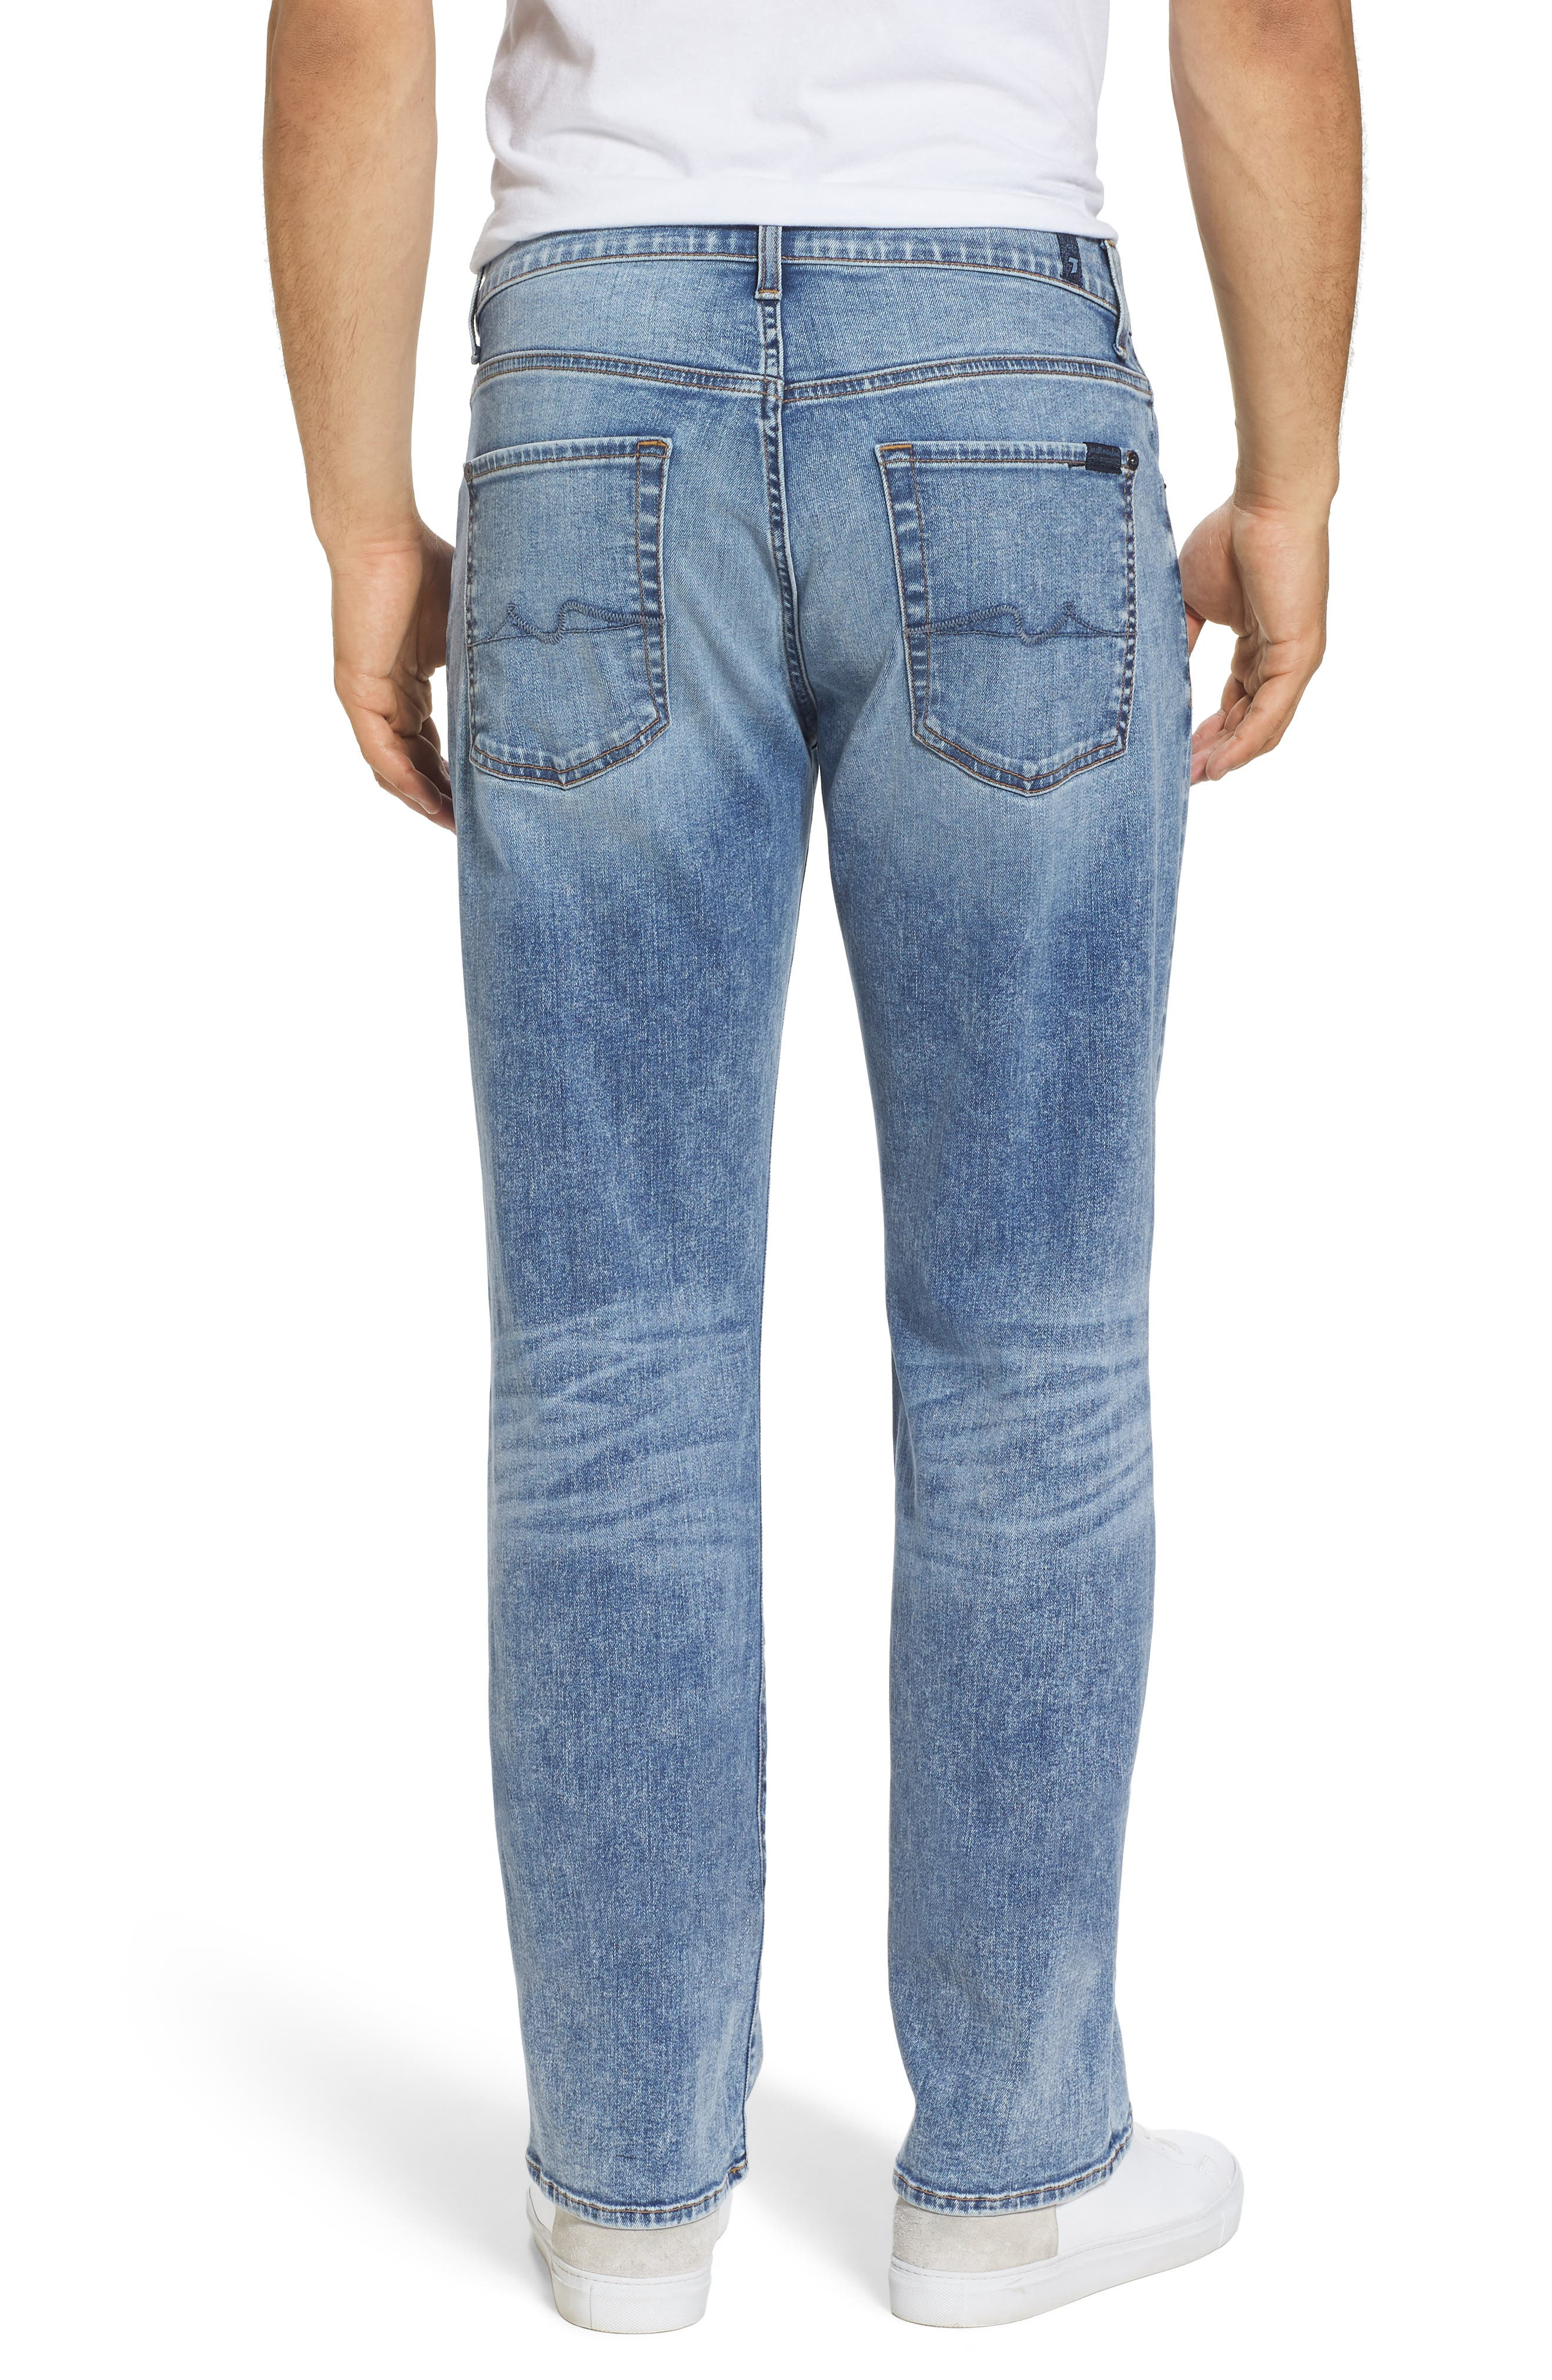 Austyn - Luxe Performance Relaxed Fit Jeans,                             Alternate thumbnail 2, color,                             Death Valley